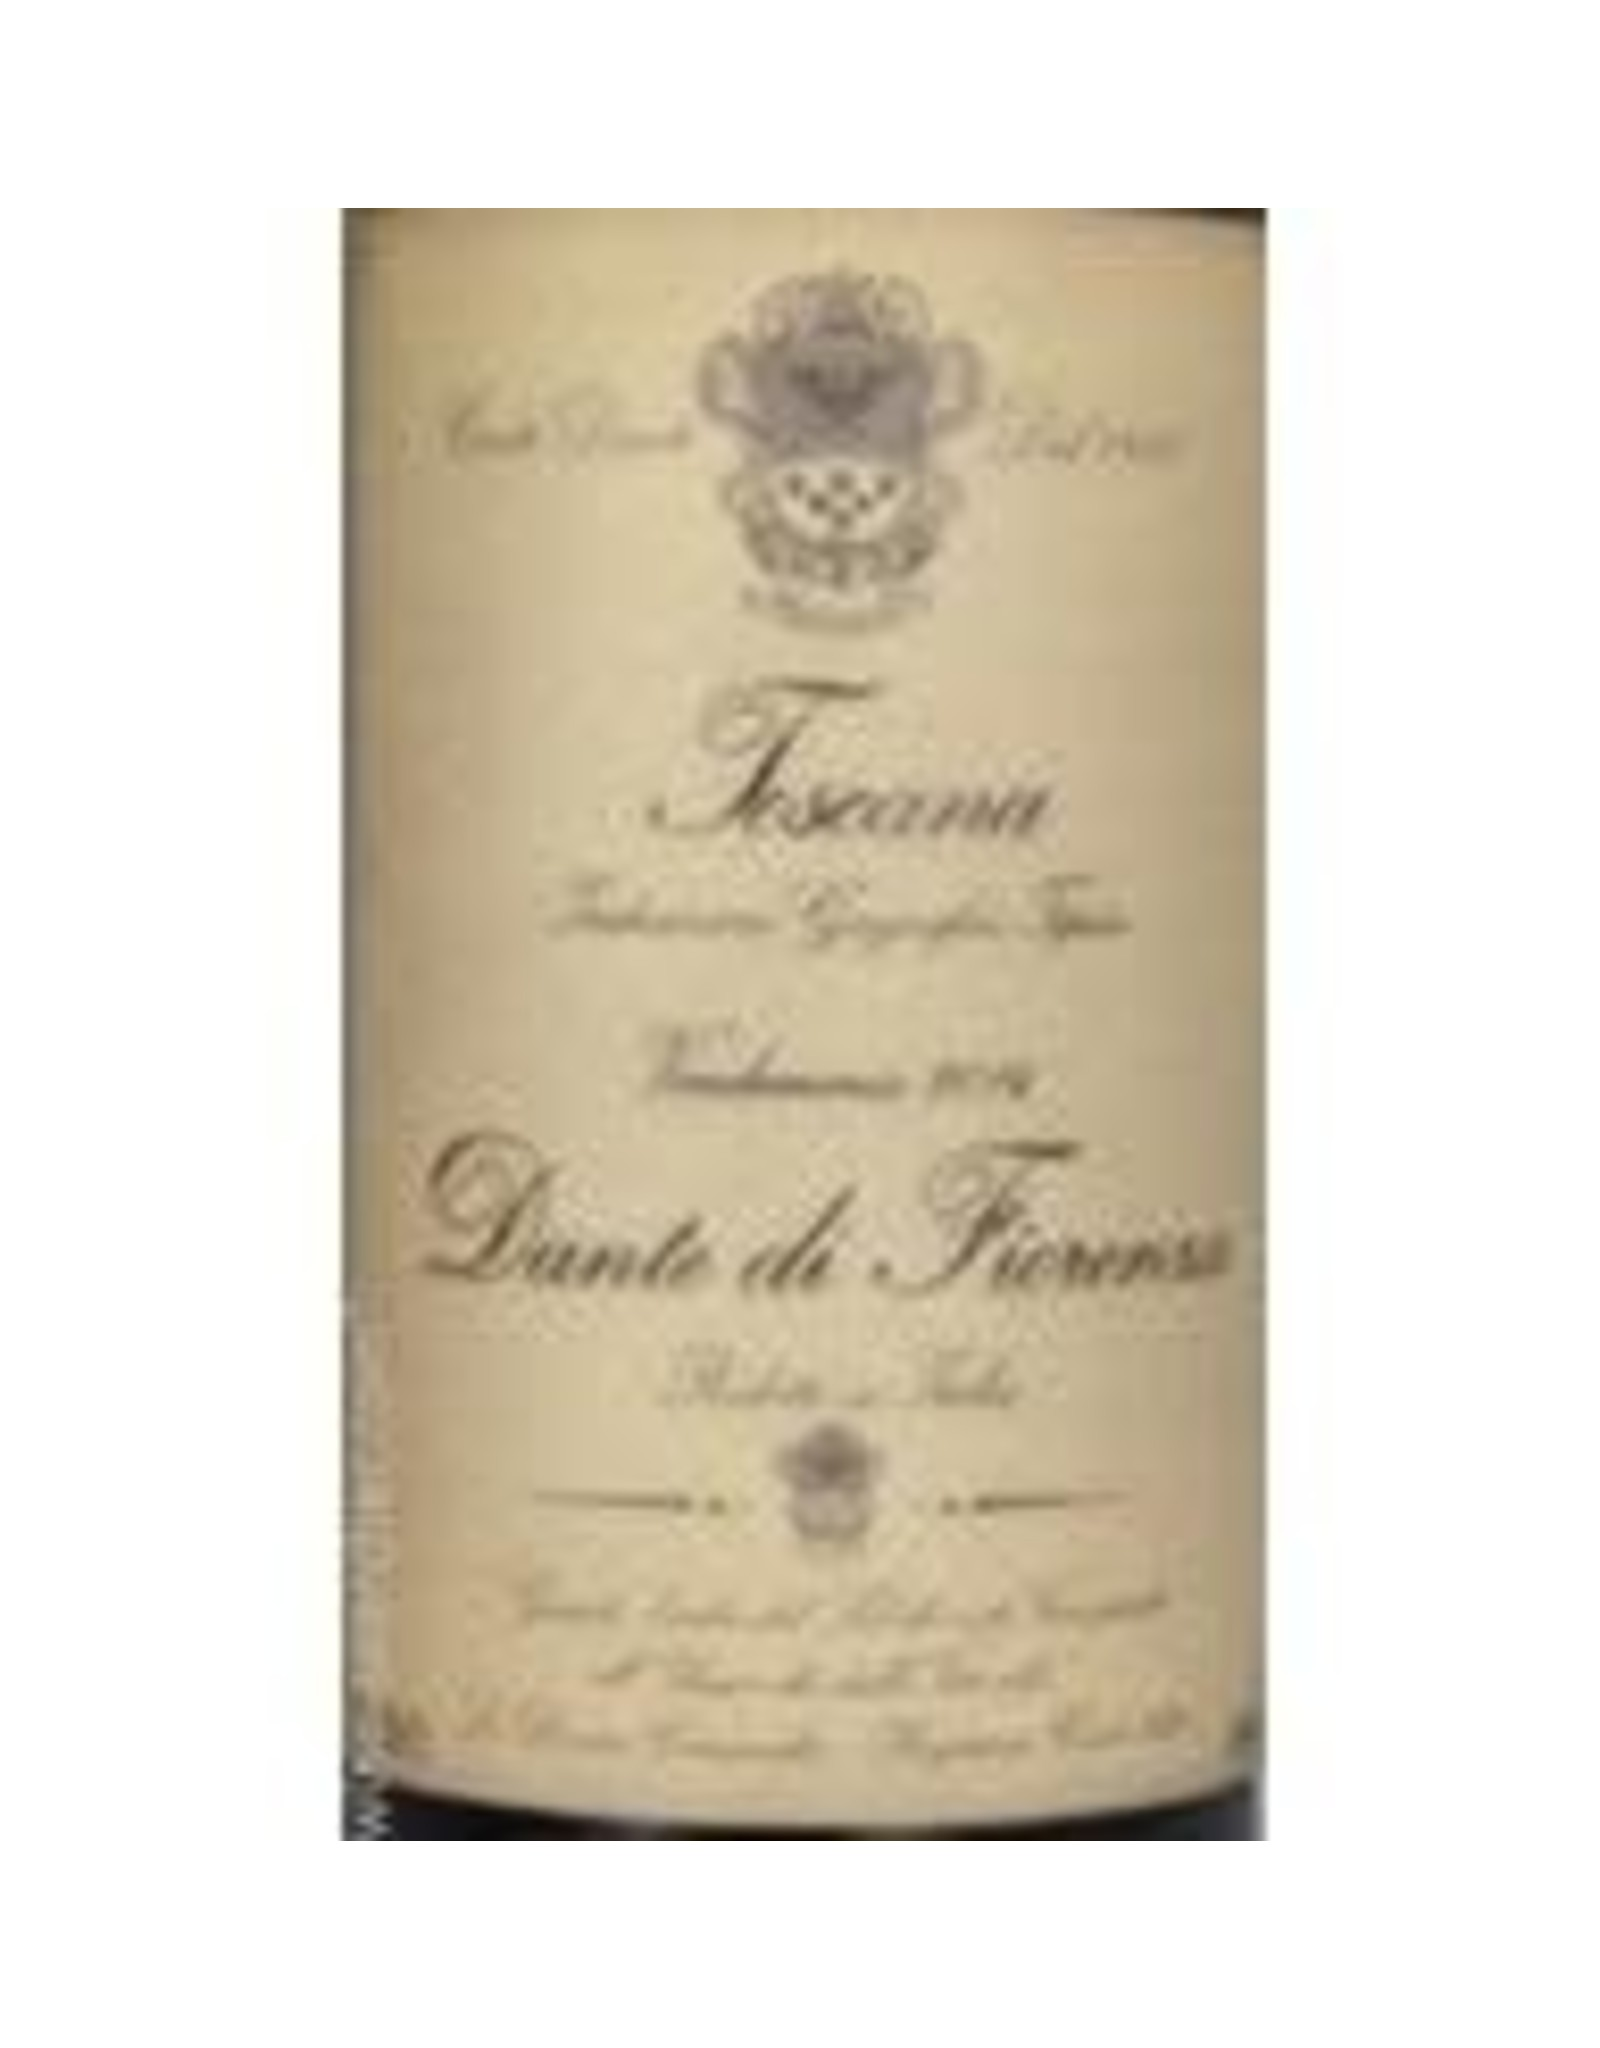 DANTE DI FIORENZA TUSCAN RED 750 ML